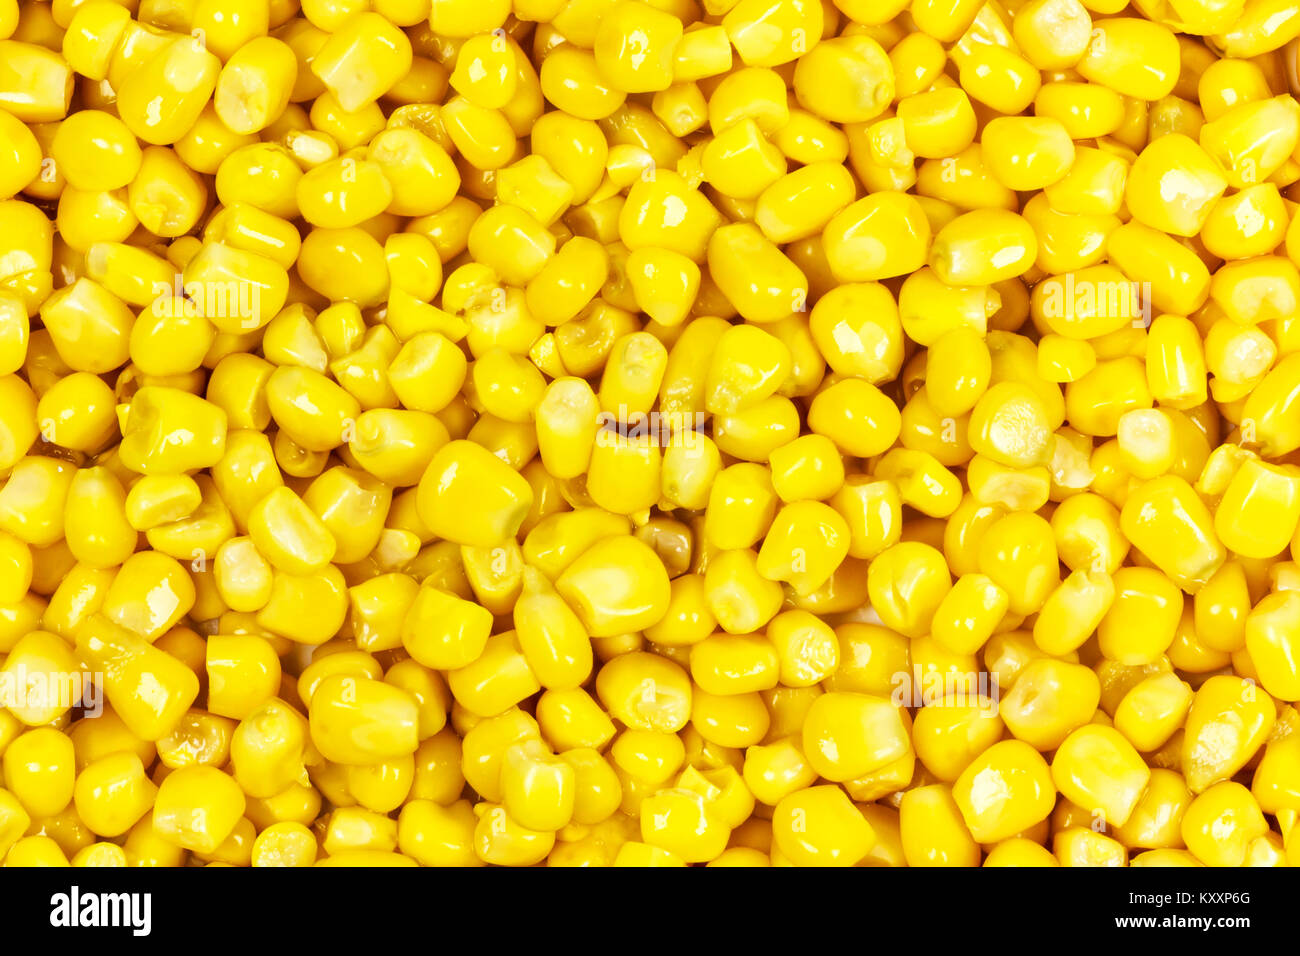 Close-up grains of corn over the entire surface of the image Stock Photo